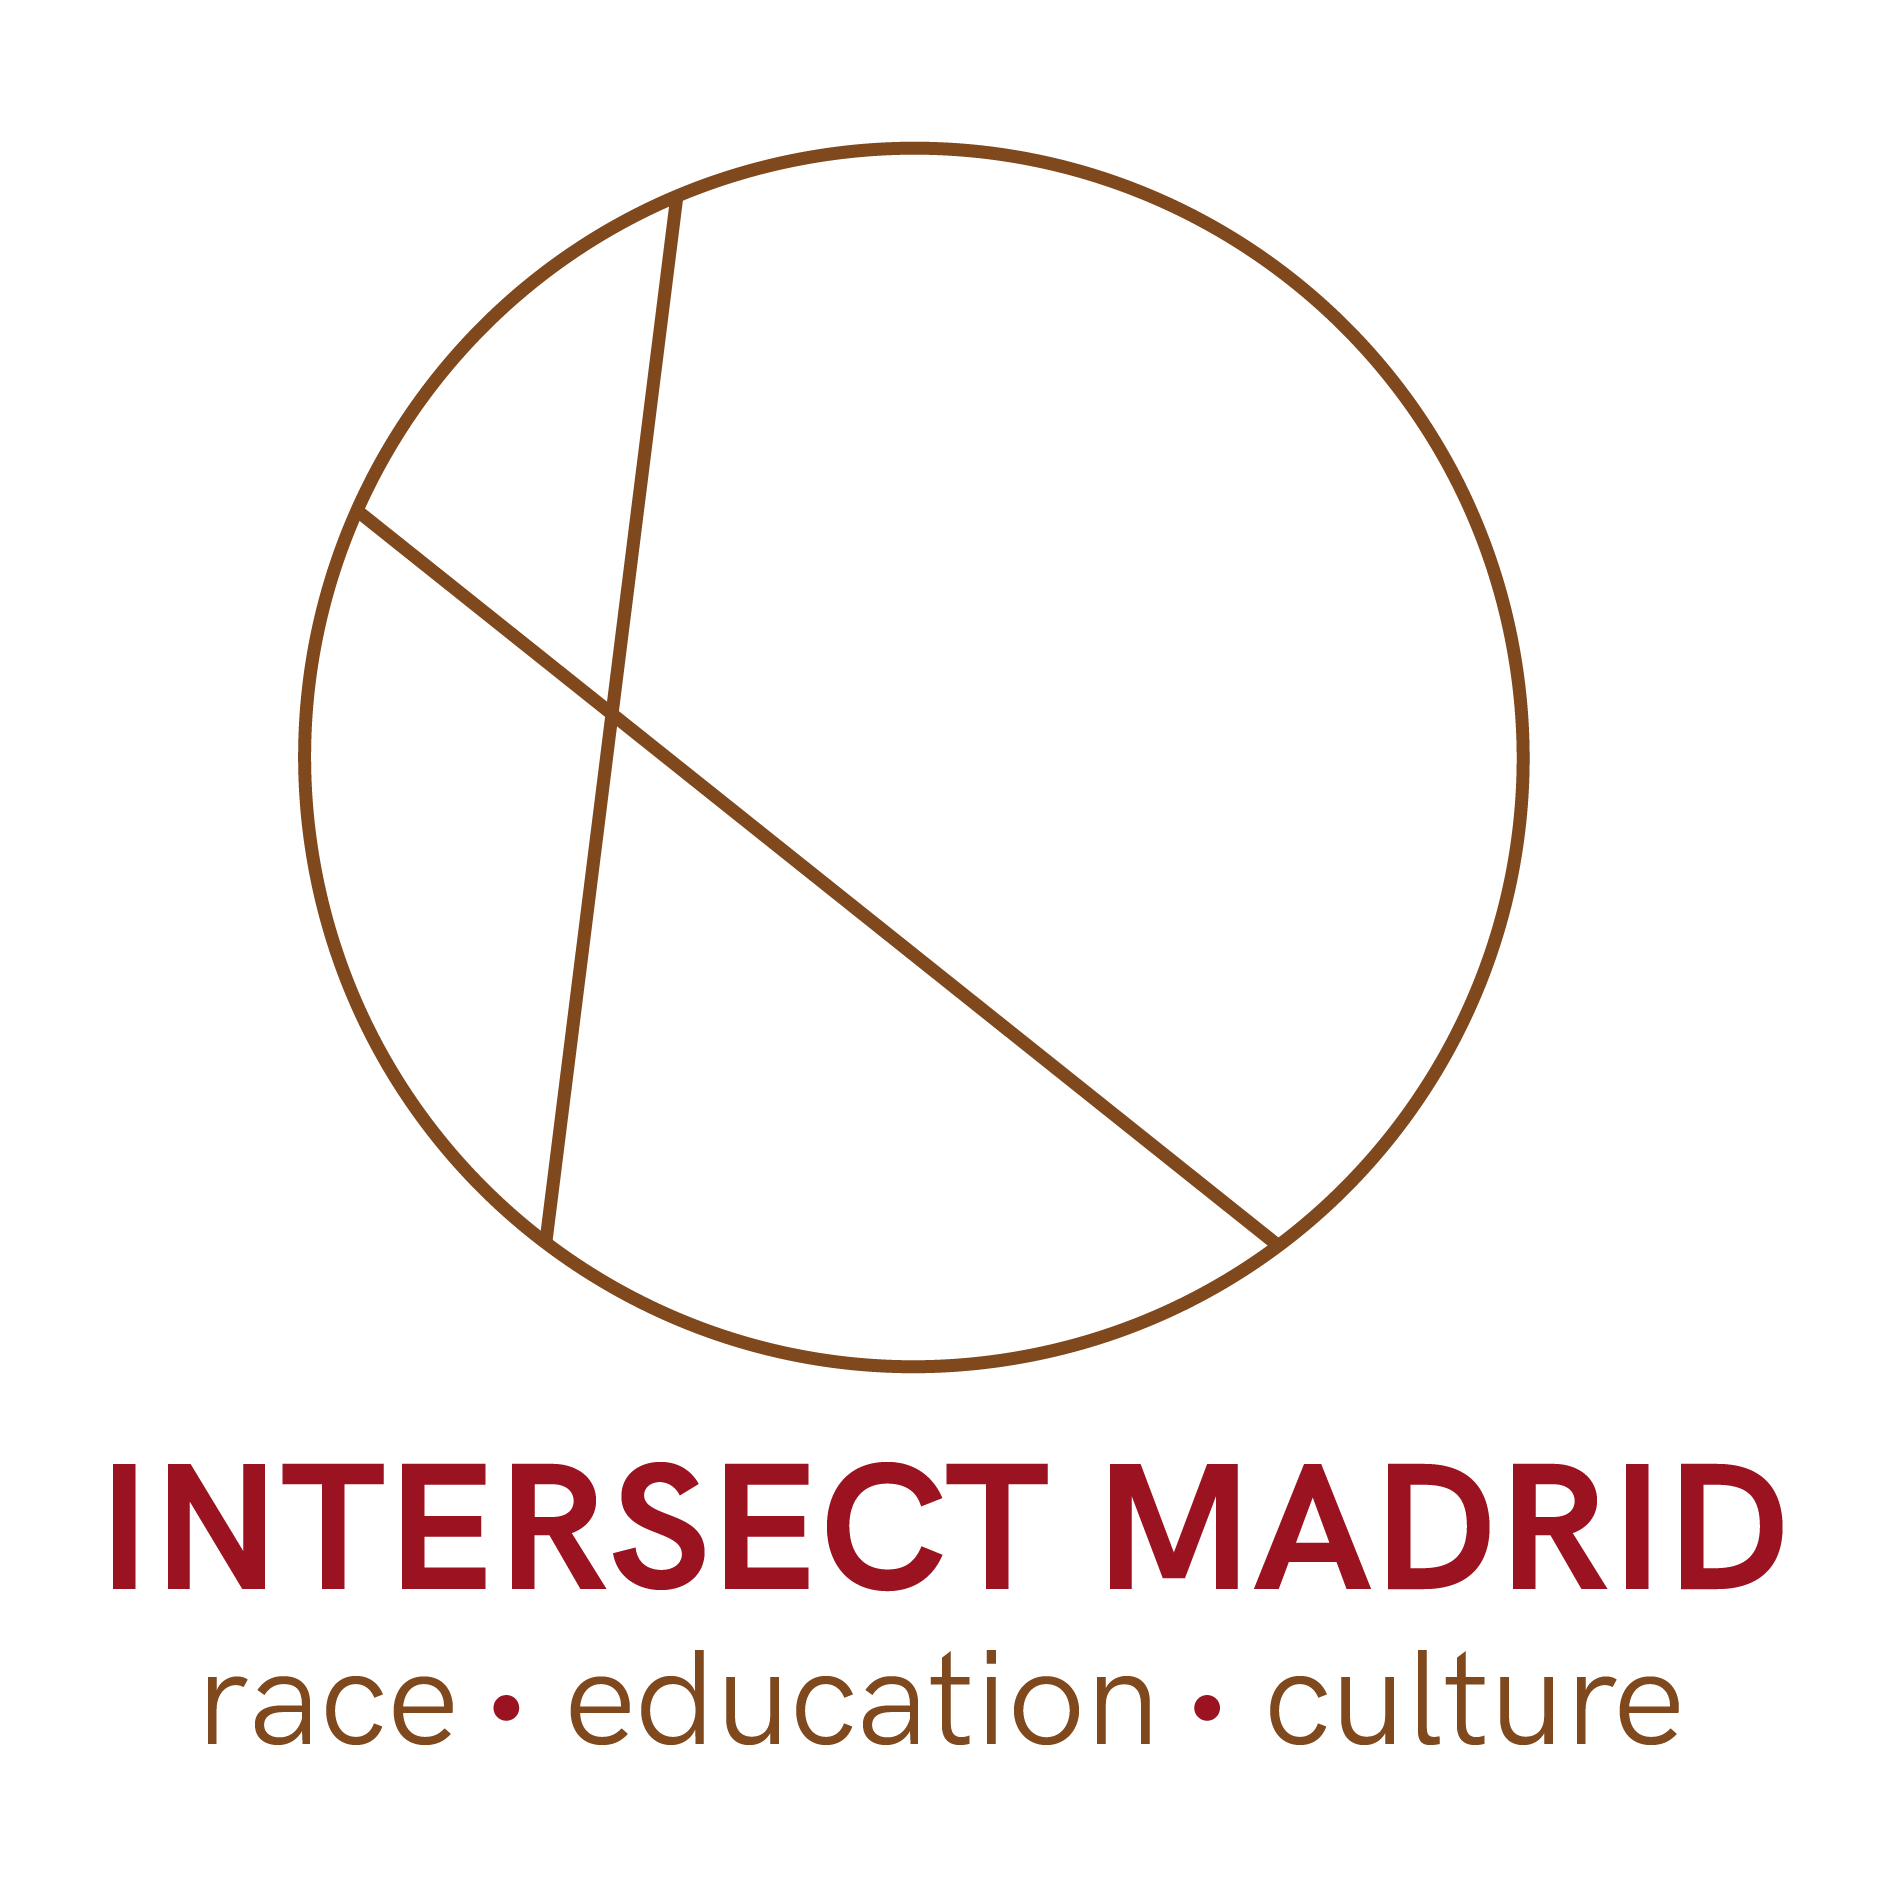 Intersect Madrid